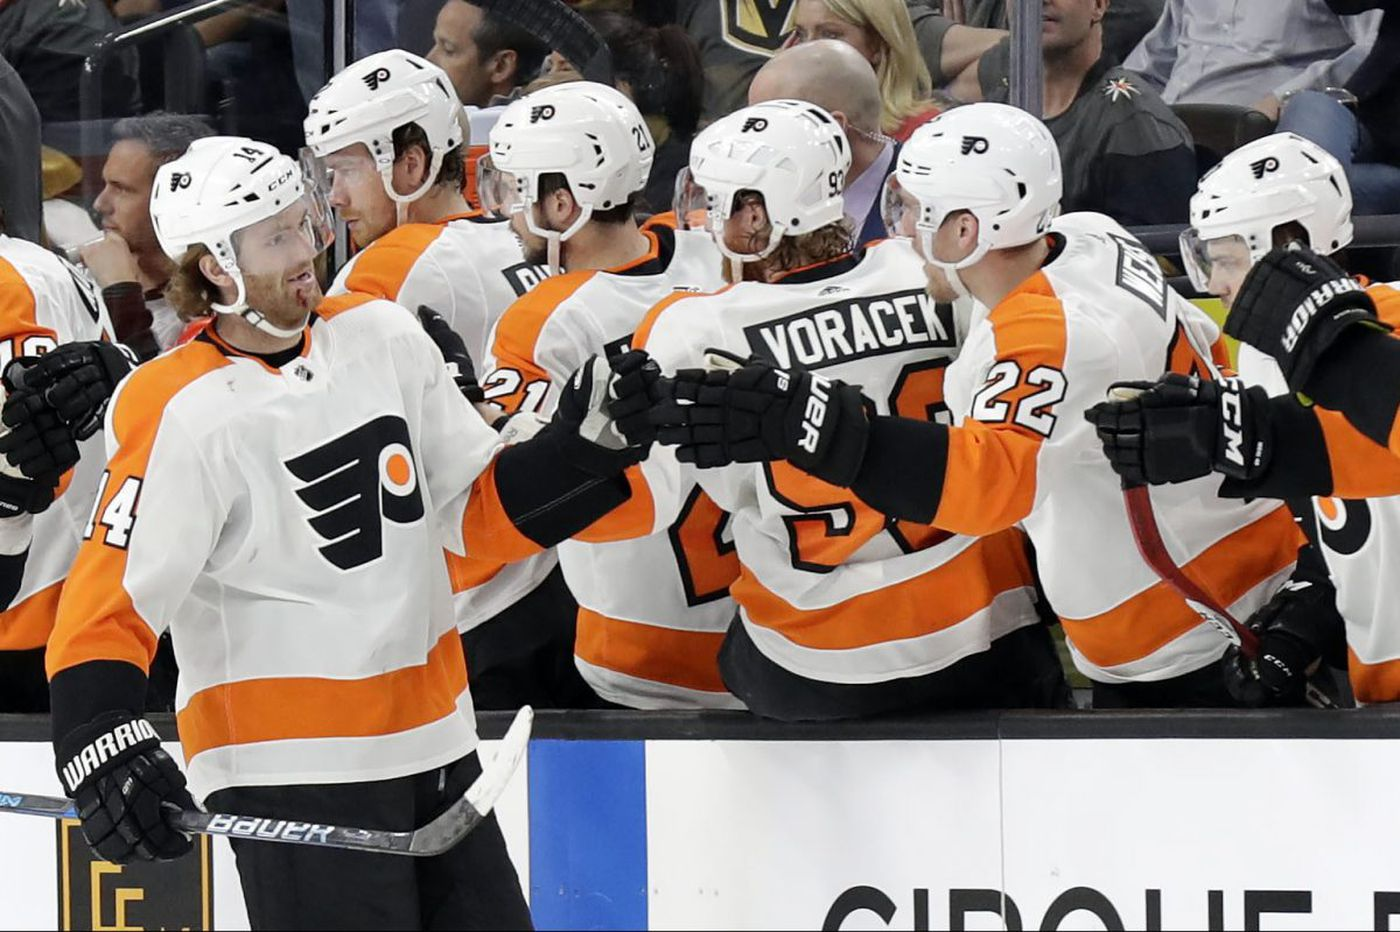 Sean Couturier, Michal Neuvirth lead Flyers to win in Vegas